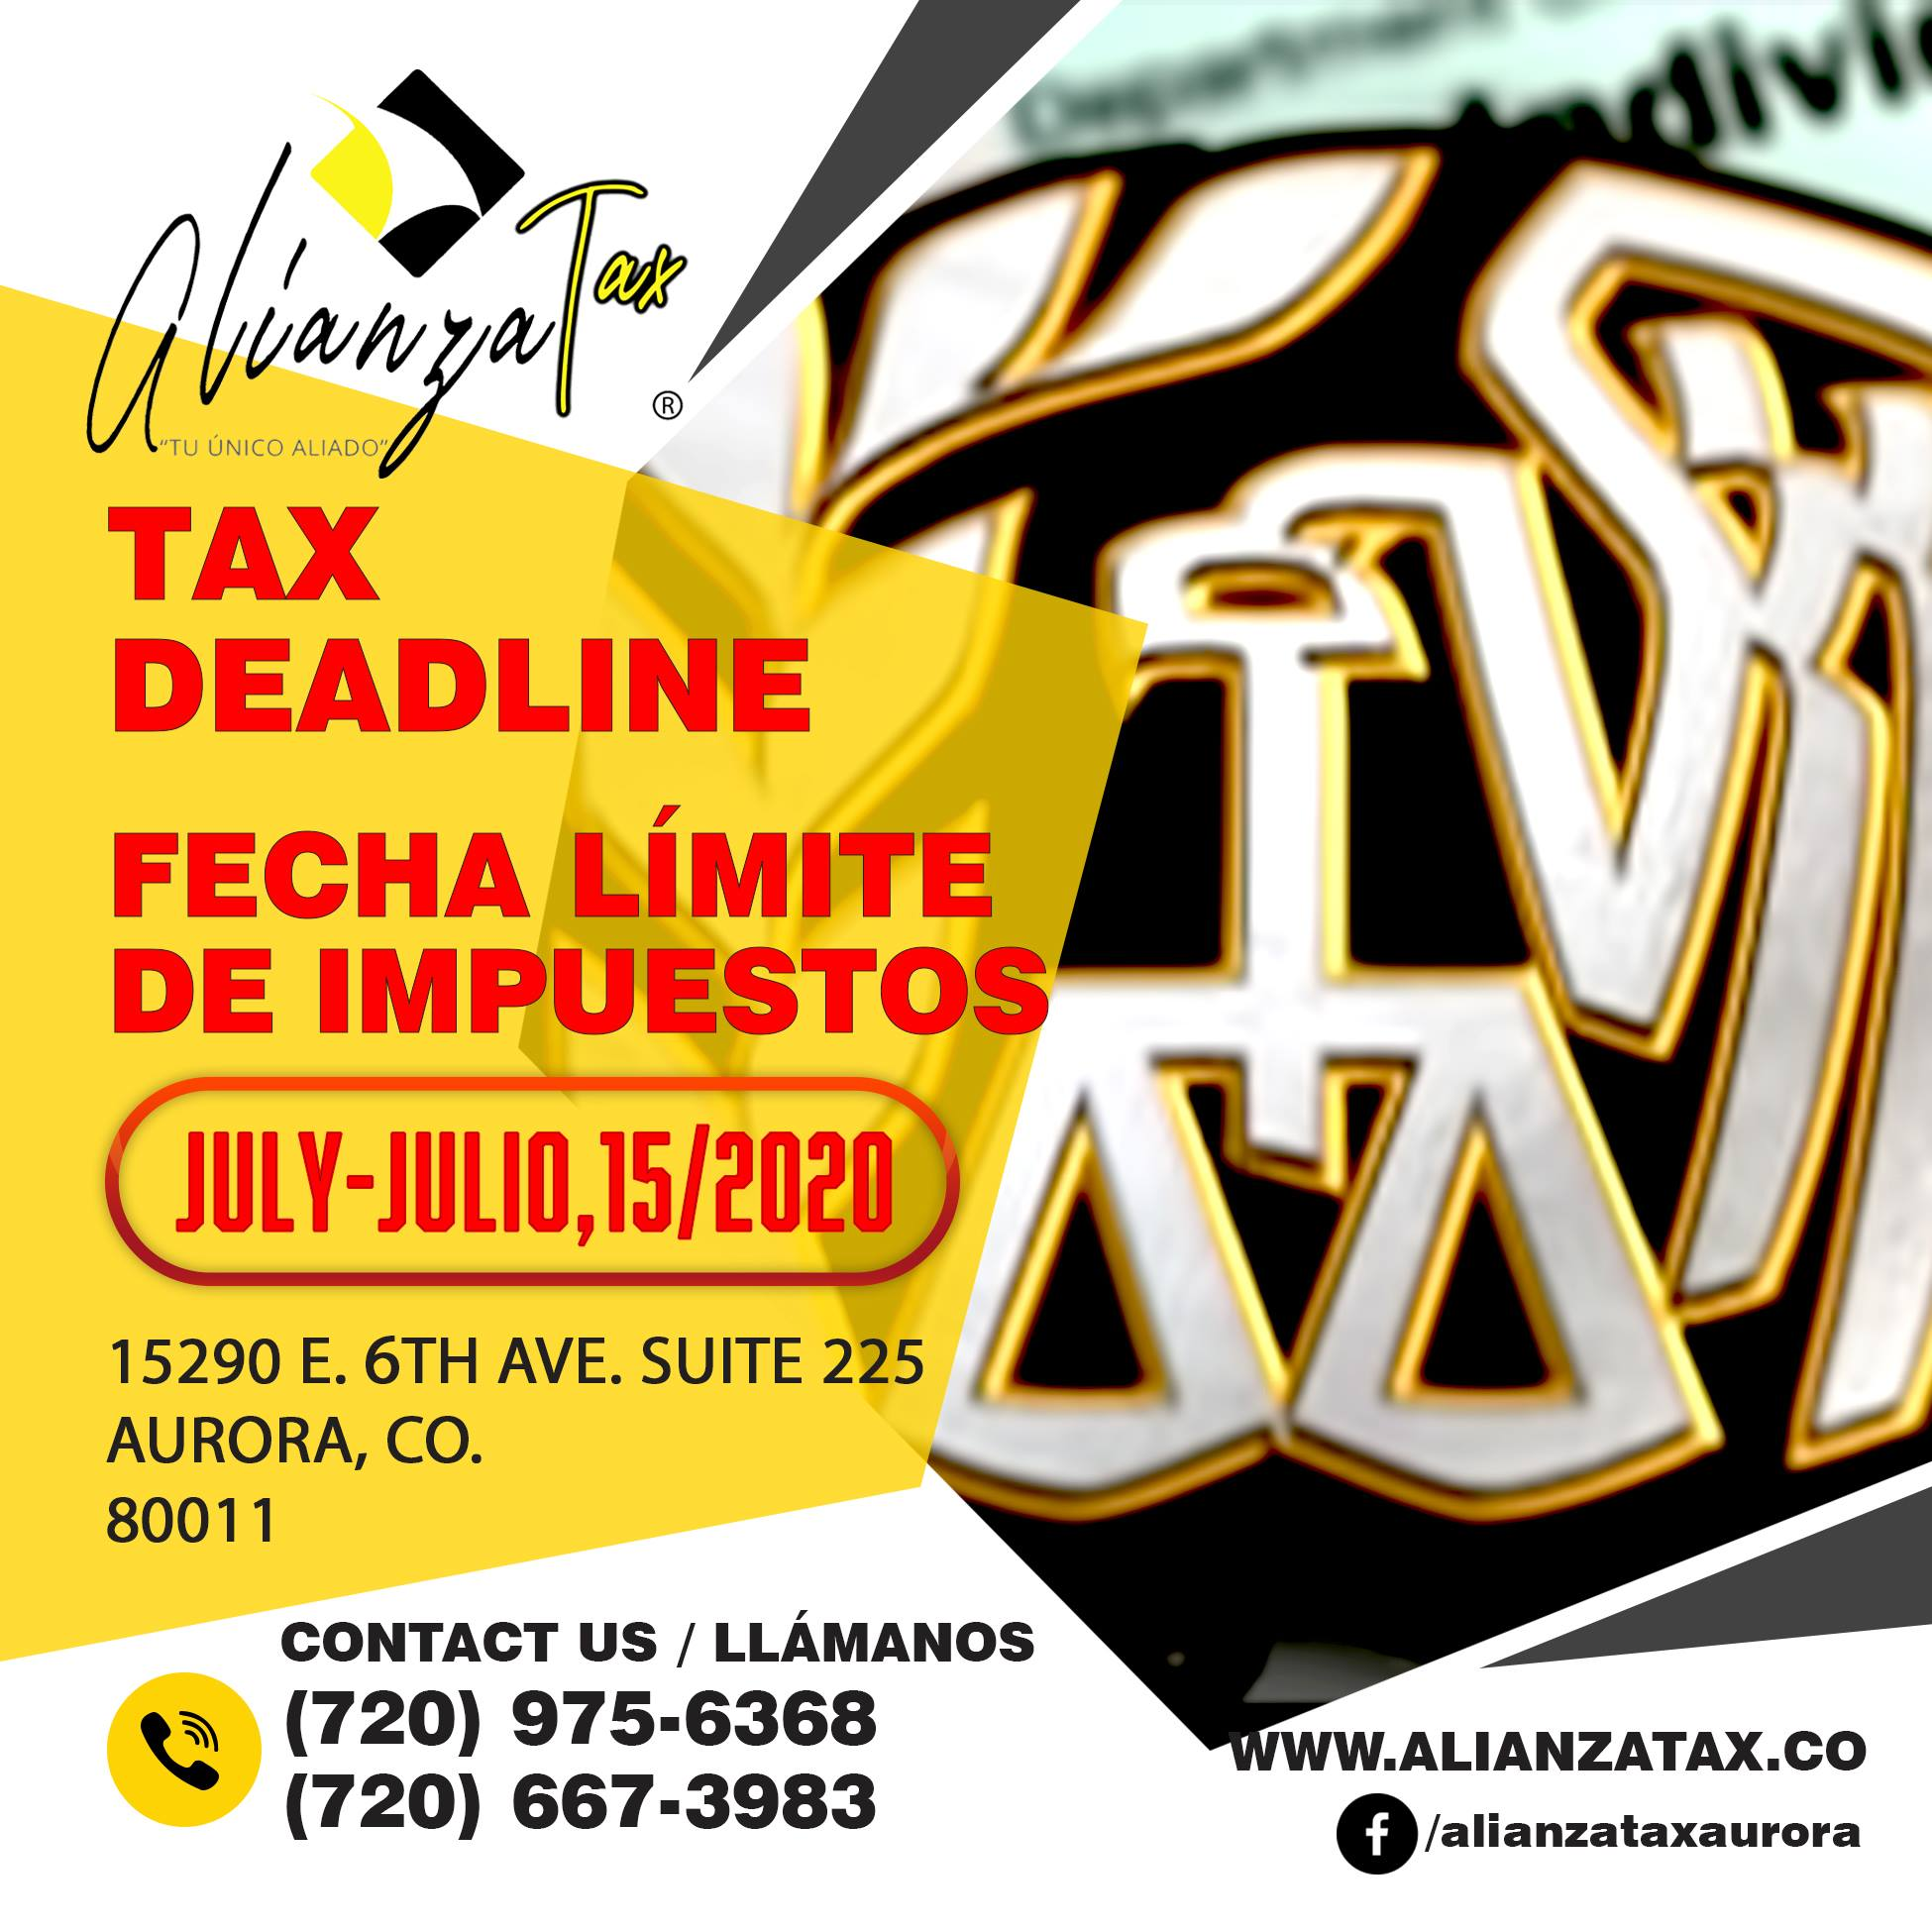 ALIANZA TAX DEADLINE 2020